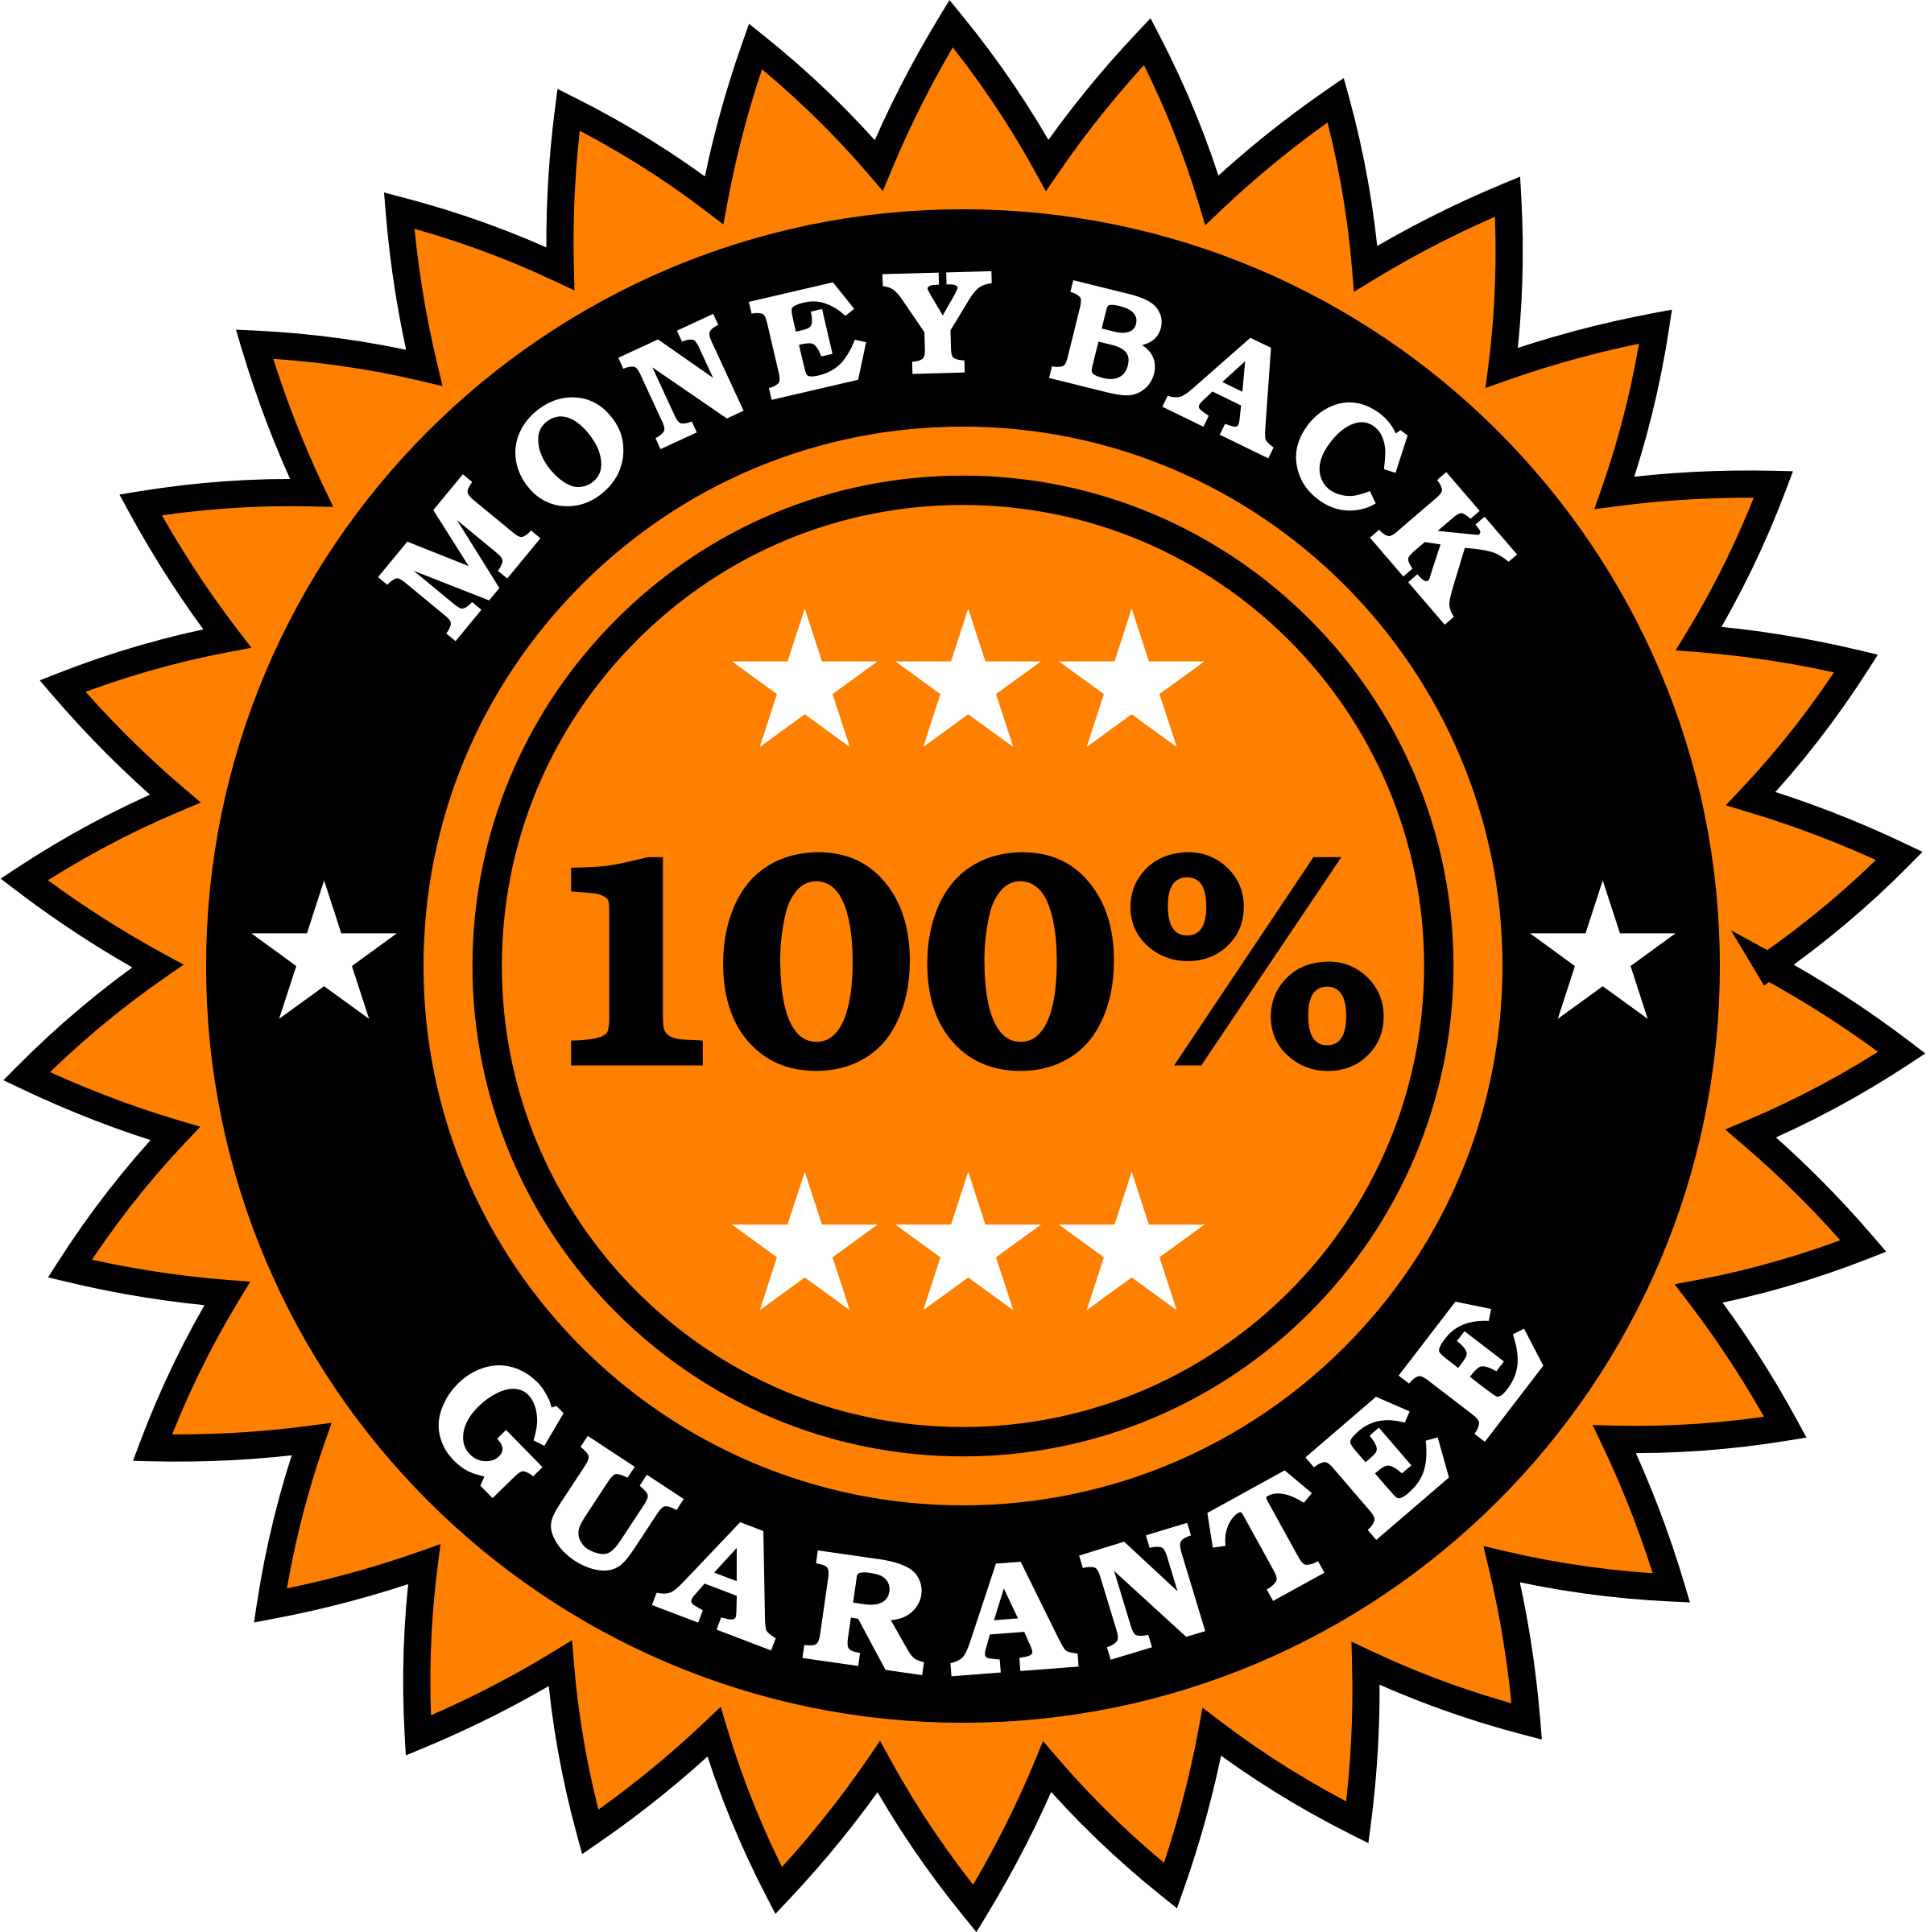 Money Back Guarantee Sticker by vectorportal